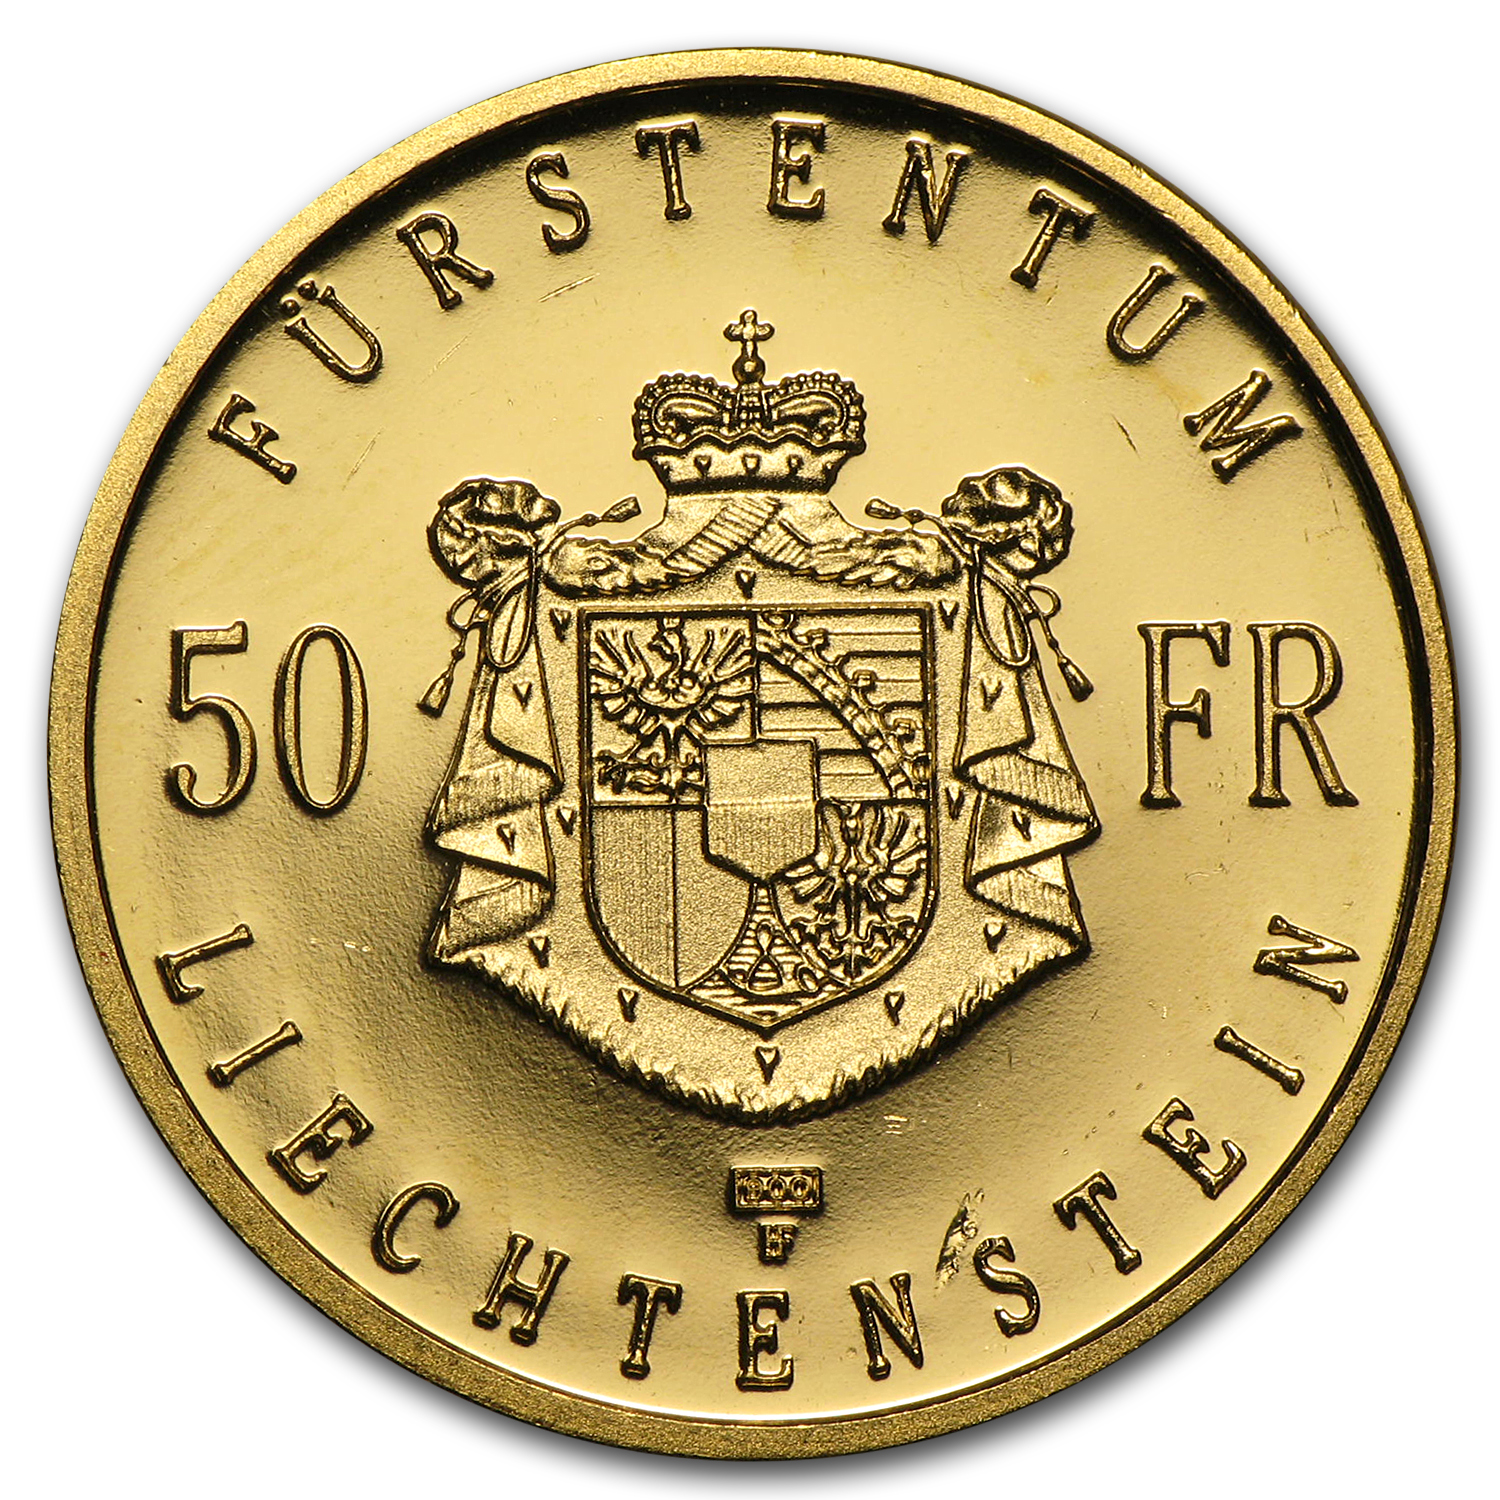 1990 Liechtenstein Gold 50 Franken Proof (AGW .2893)